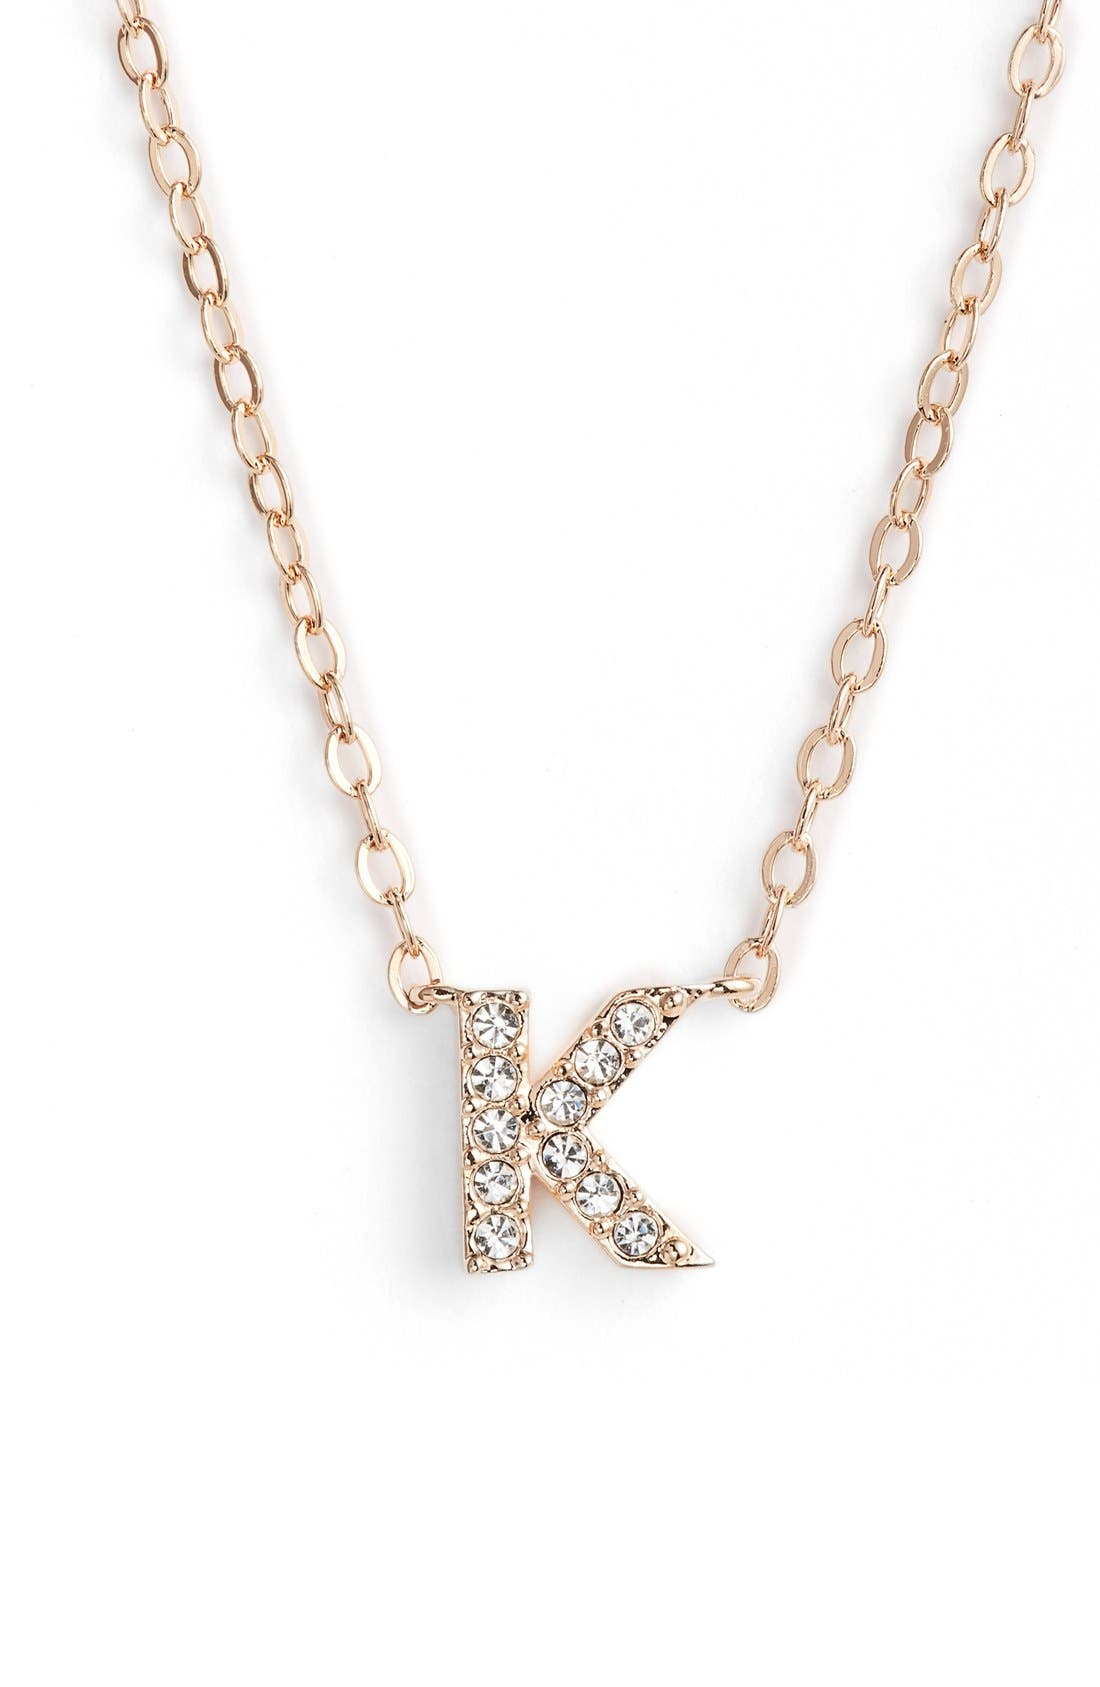 Nadri initial pendant necklace k rose gold modesens nadri initial pendant necklace k rose gold aloadofball Choice Image